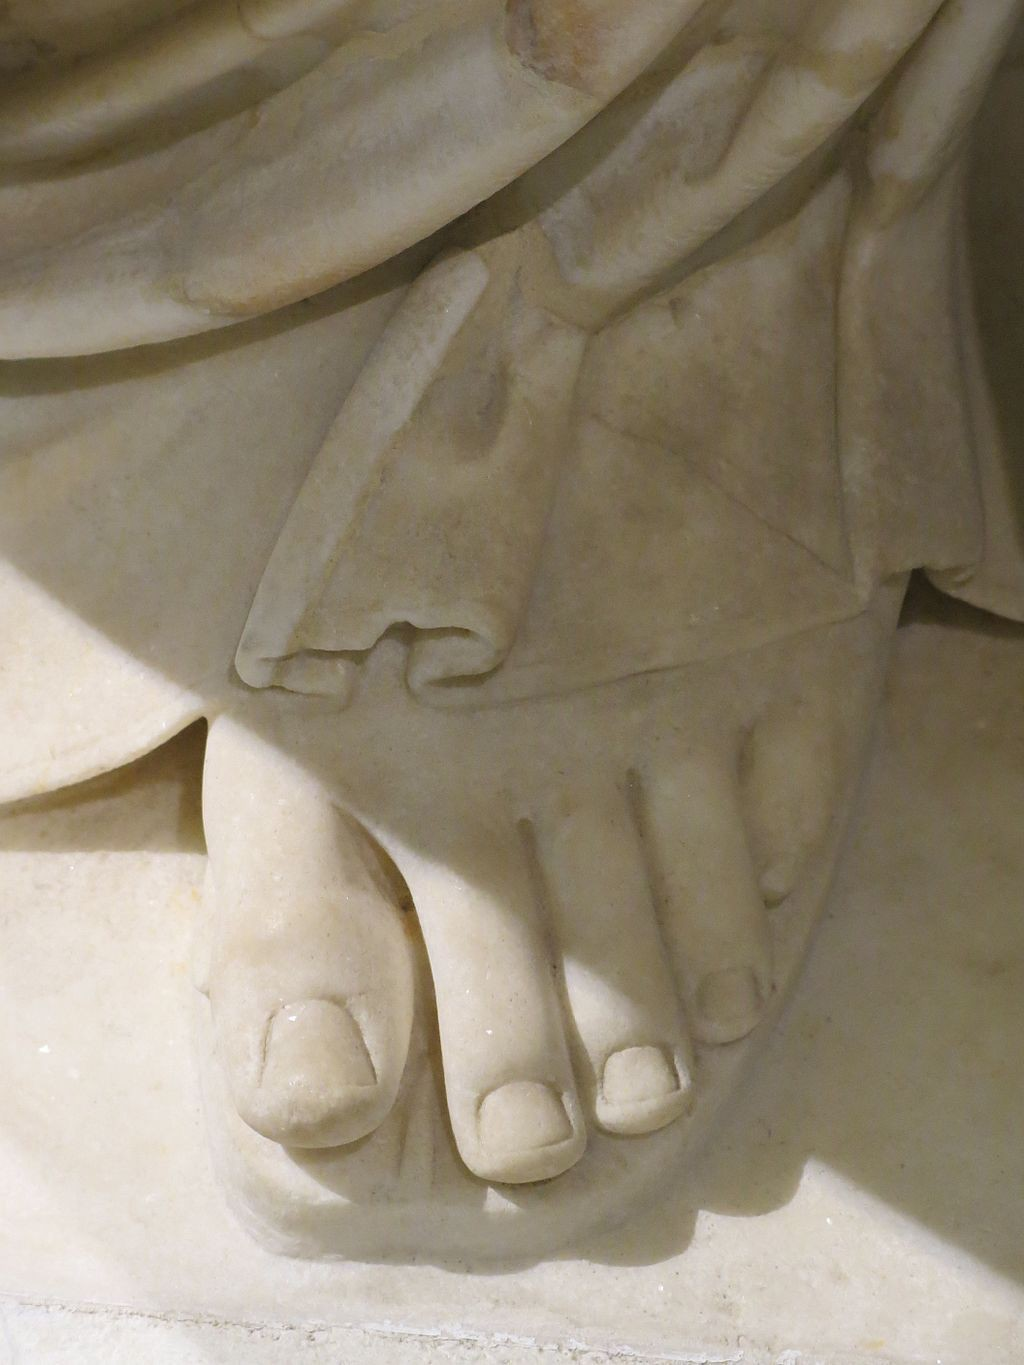 The Story Behind Greek Foot The Medical Phenomenon In Grecian Artwork